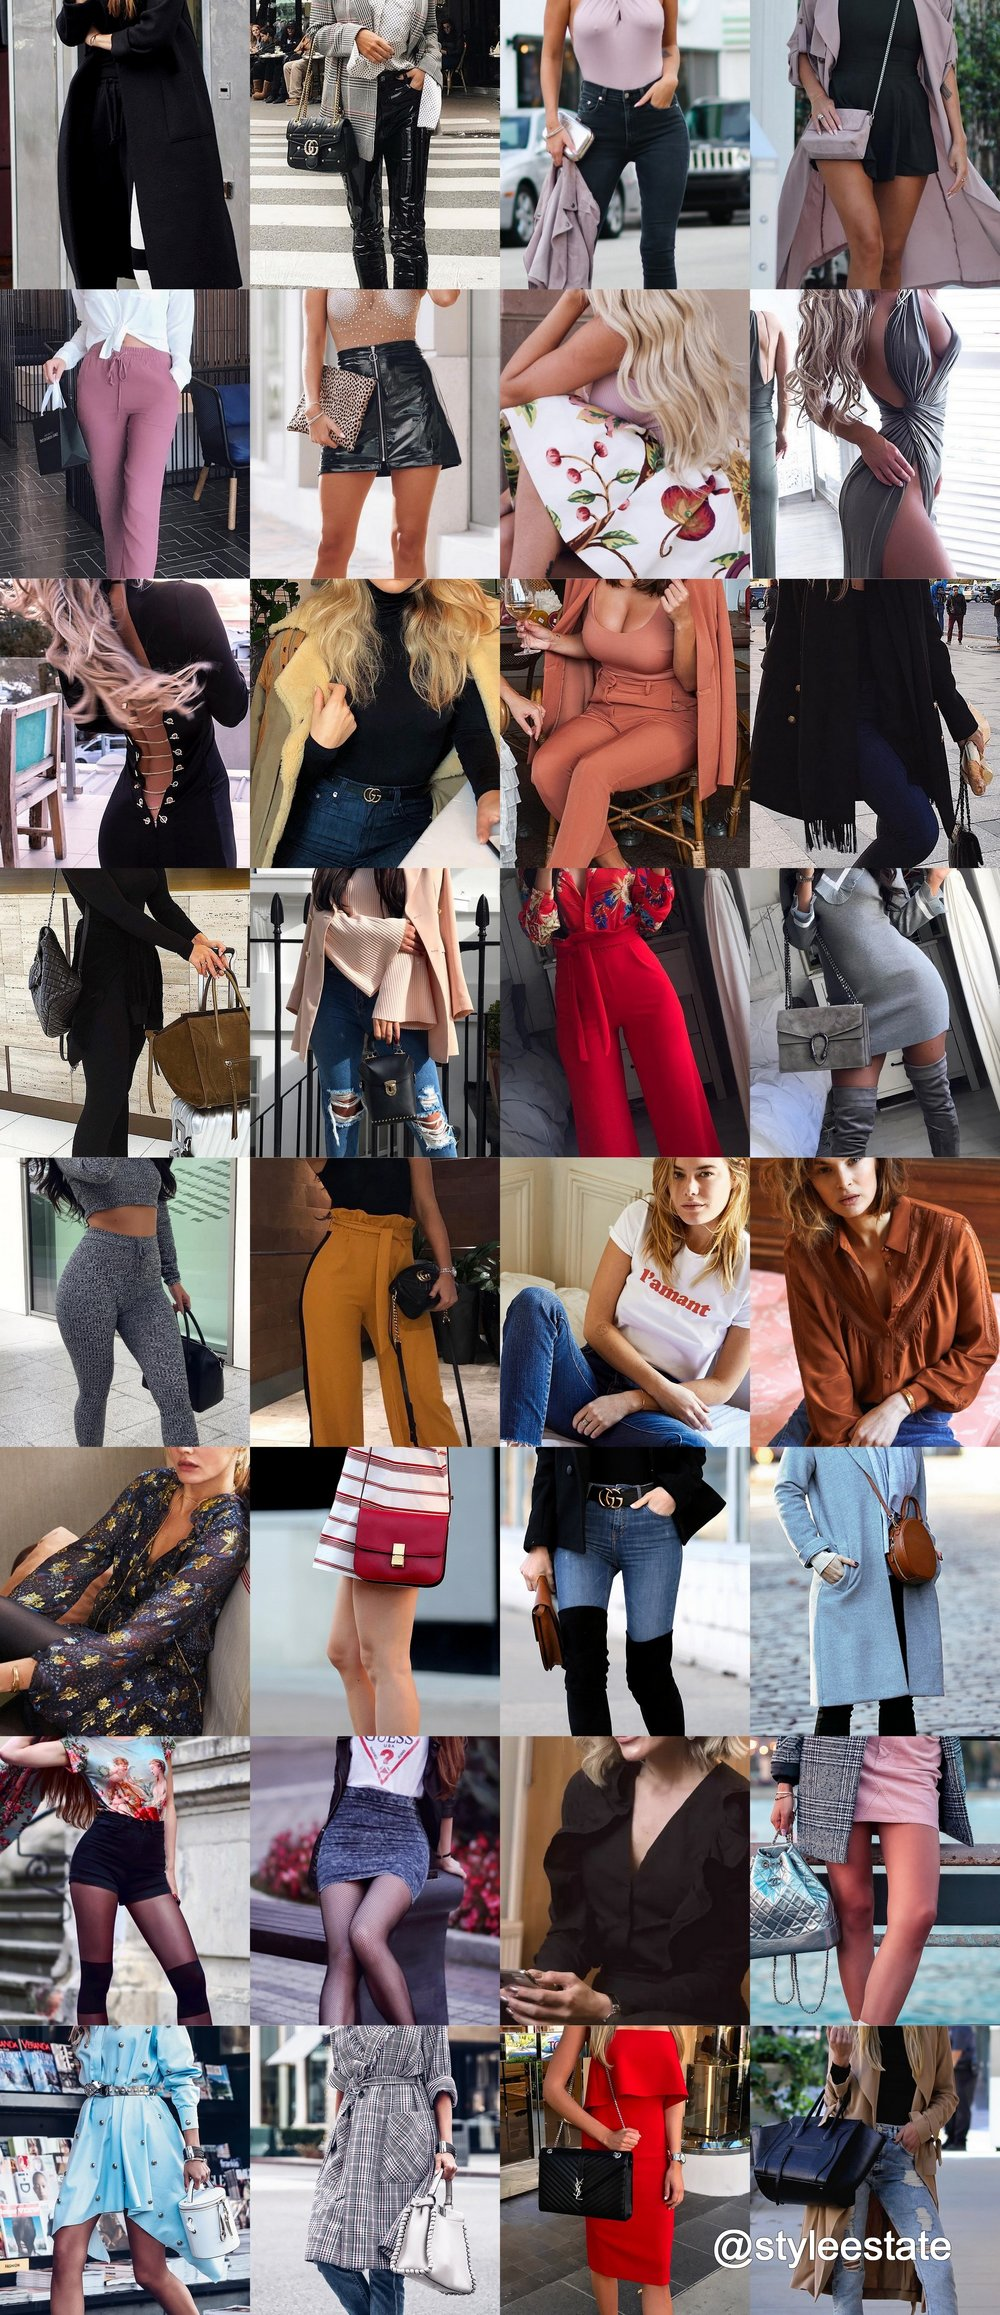 Trending Styles - 33 Outfits Ready To Be Taken!